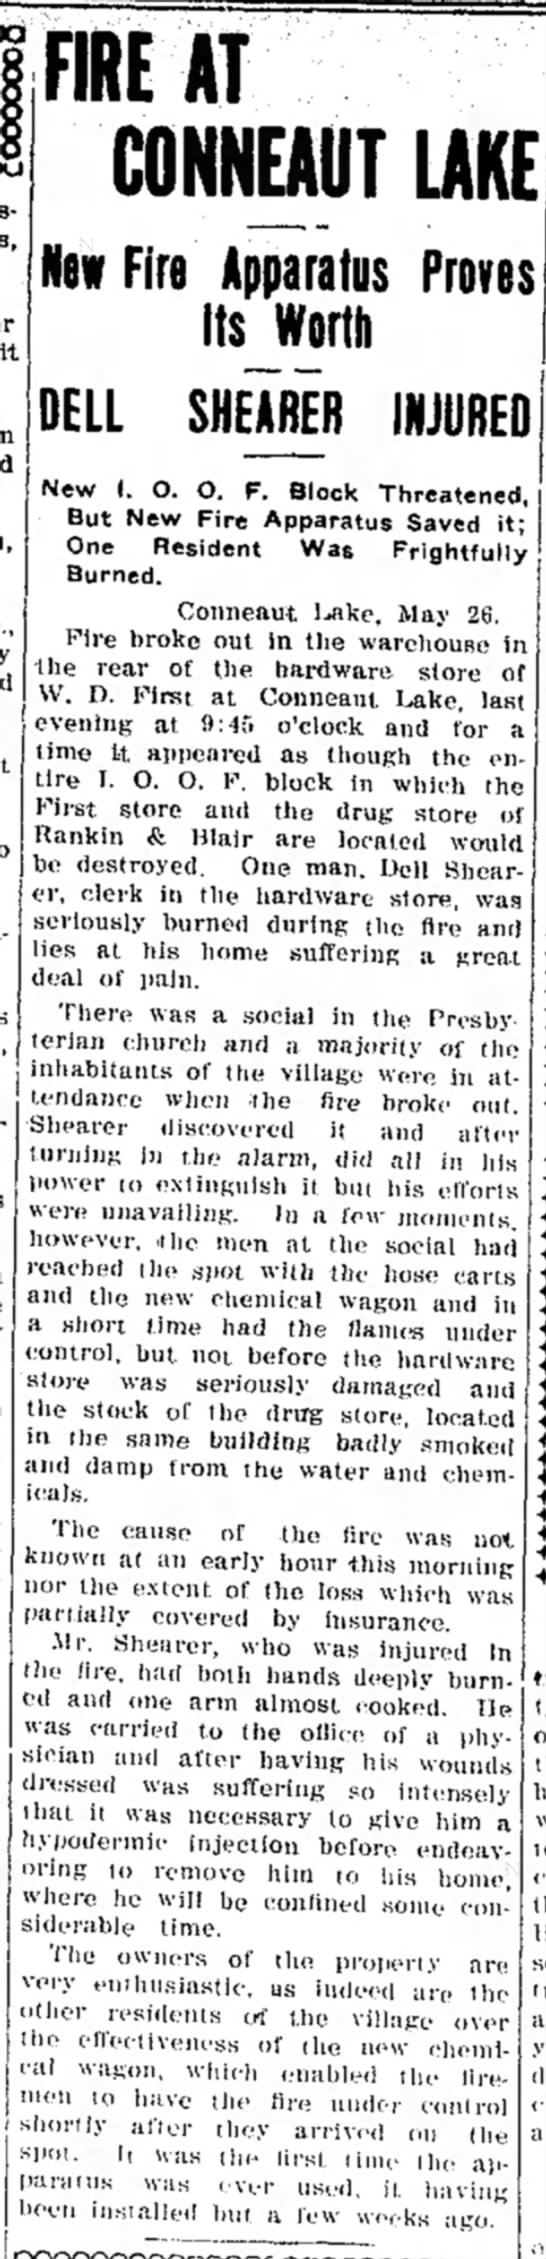 Record Argus 5/26/1911 - FIRE AT CONNEAUT LAKE New Fire Apparatus Proves...